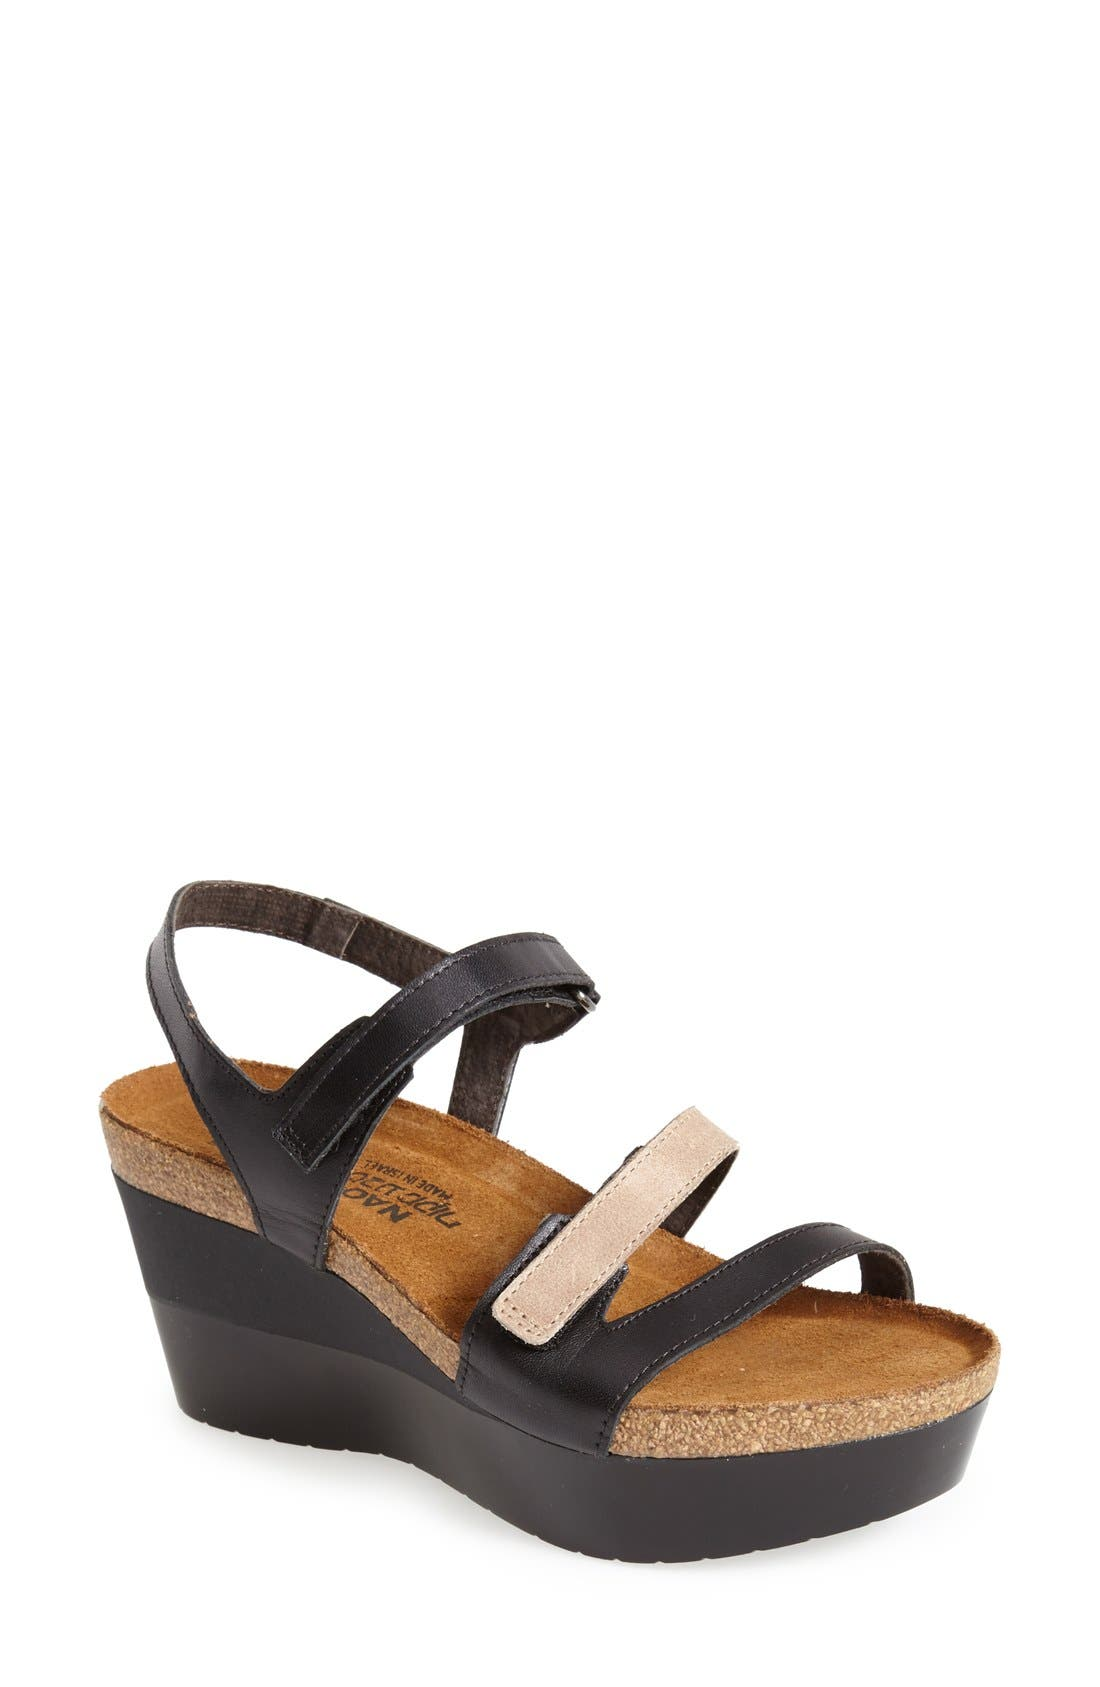 'Canaan' Wedge Sandal,                             Main thumbnail 1, color,                             BLACK/ BEIGE